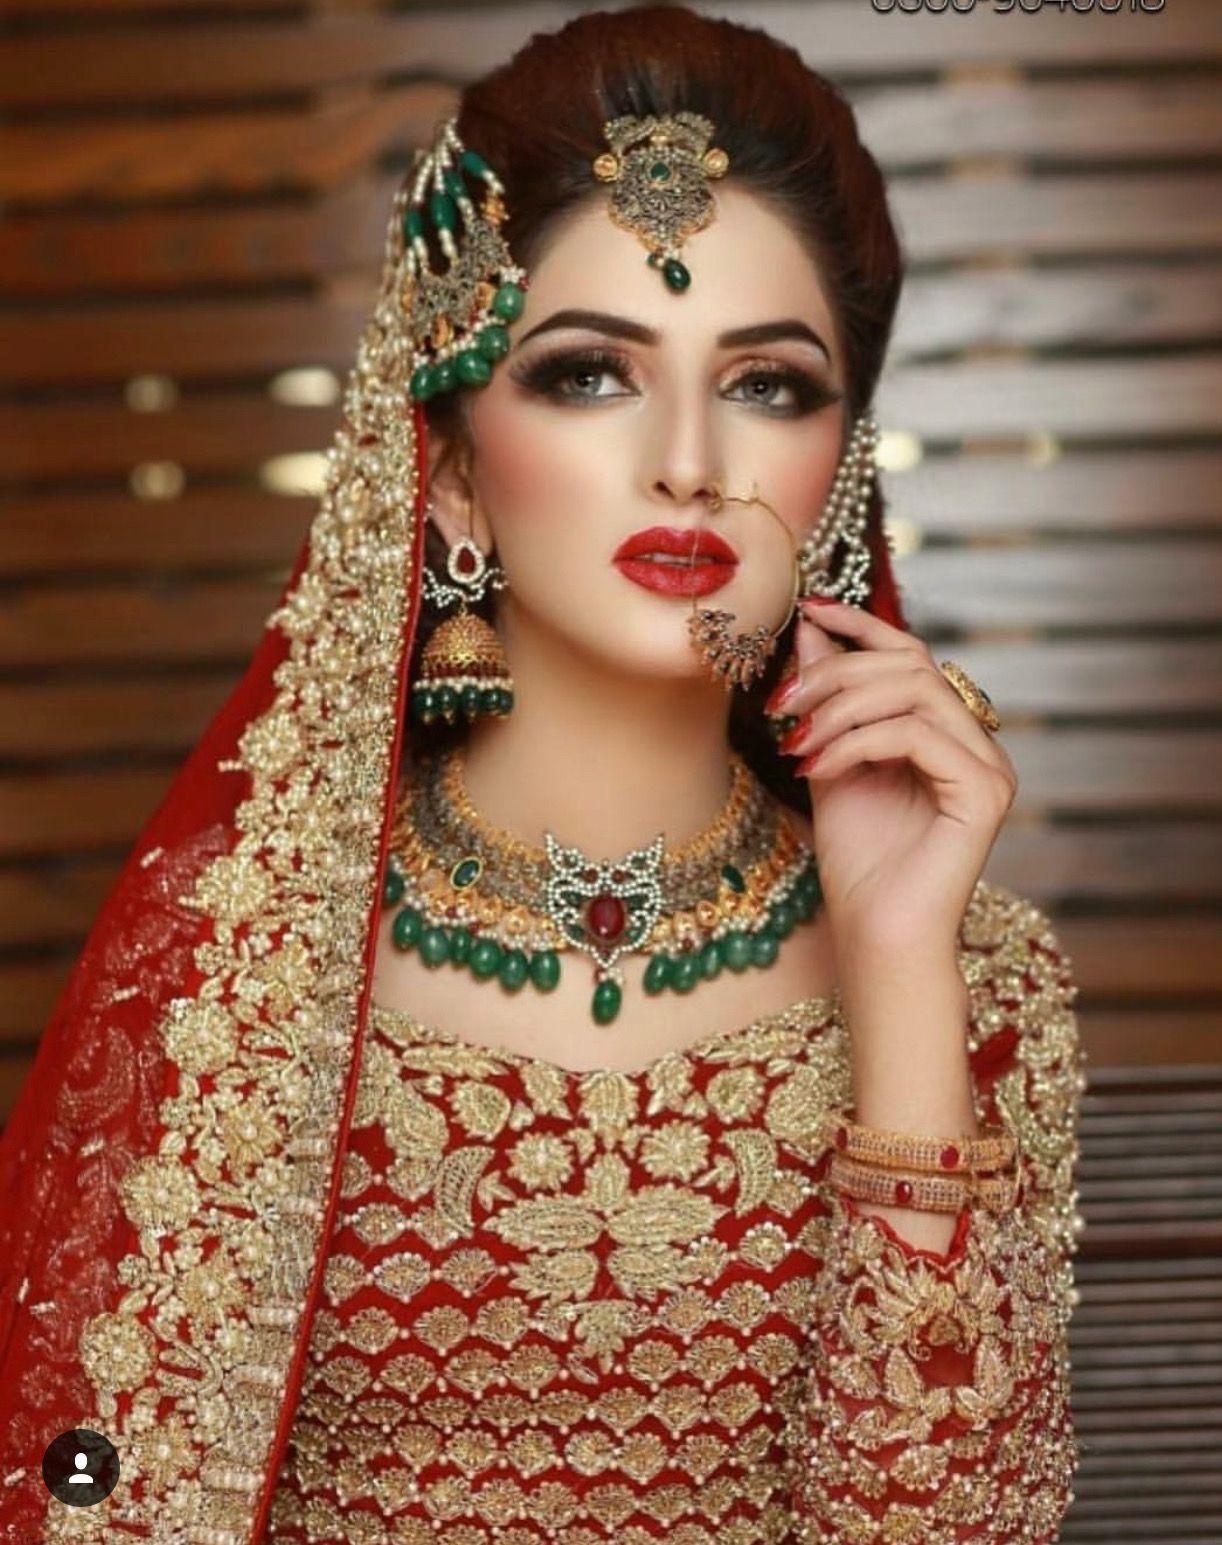 beautiful bride in red and gold. love her makeup too